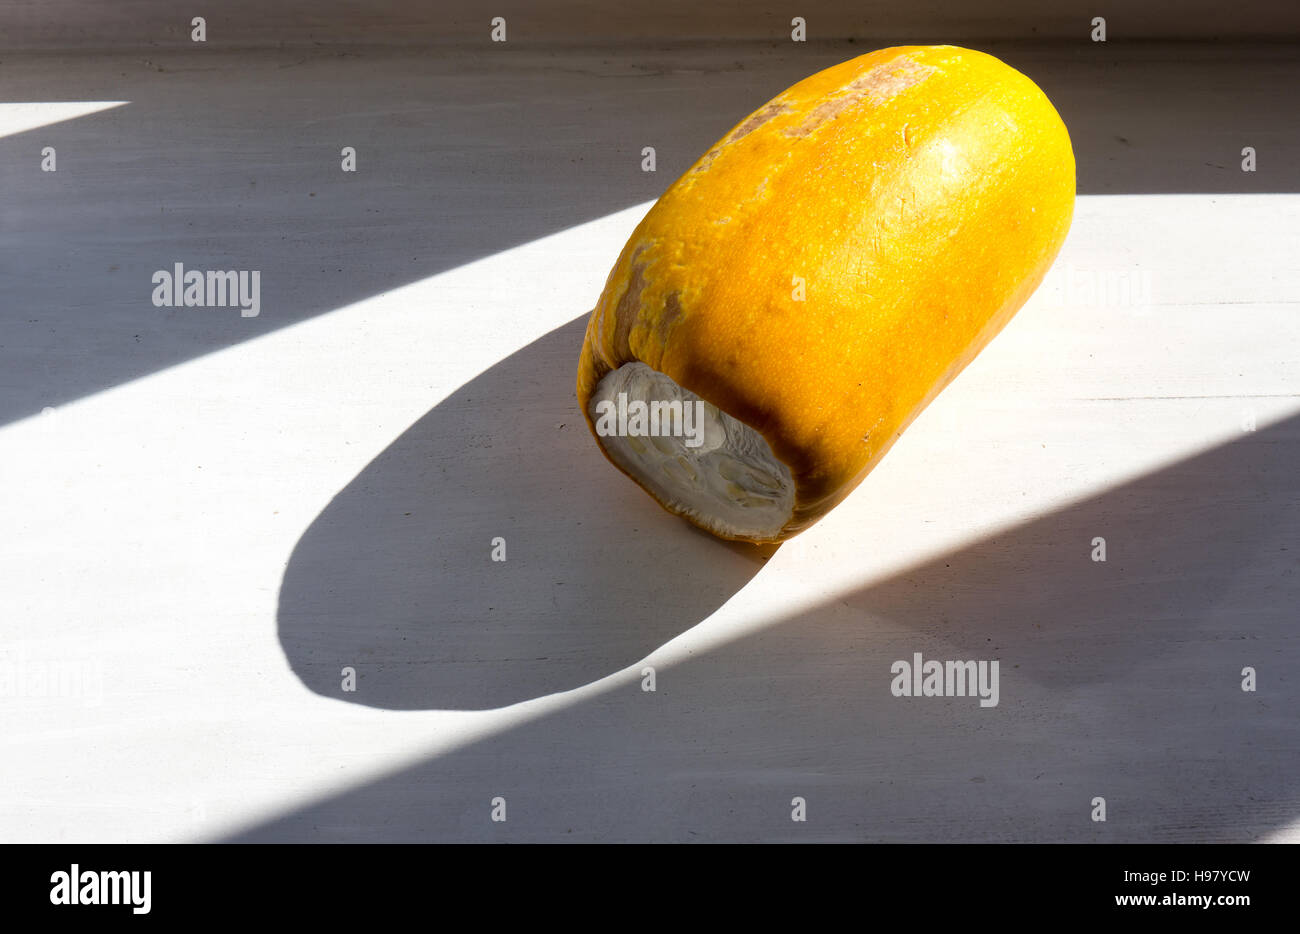 The nature raw squash object. - Stock Image